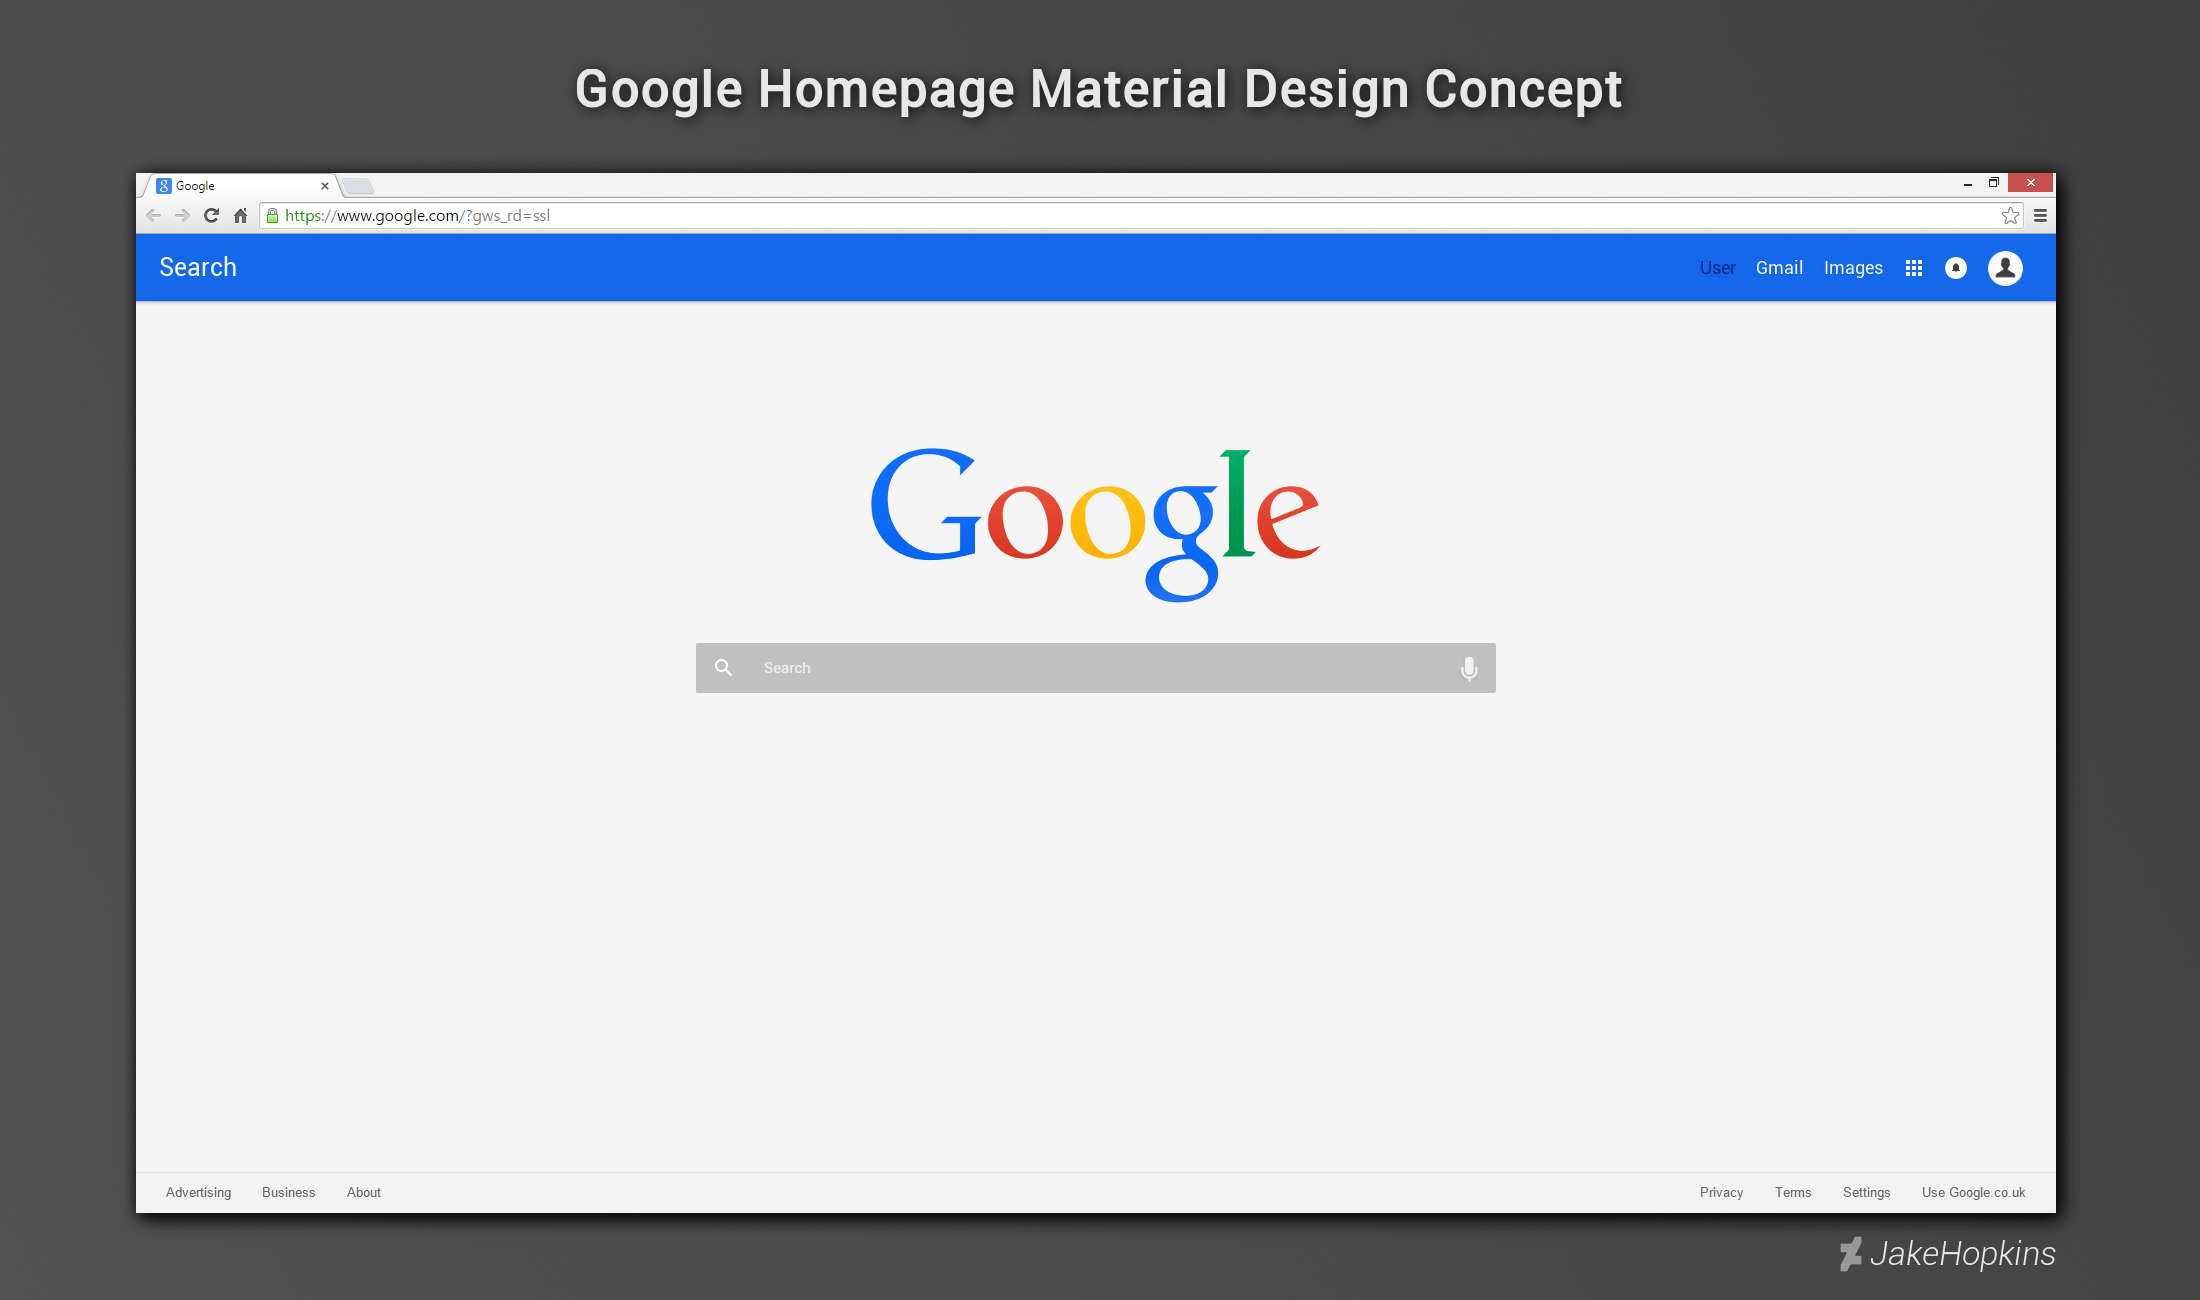 Google Homepage Material Design Concept by JakeHopkins on DeviantArt